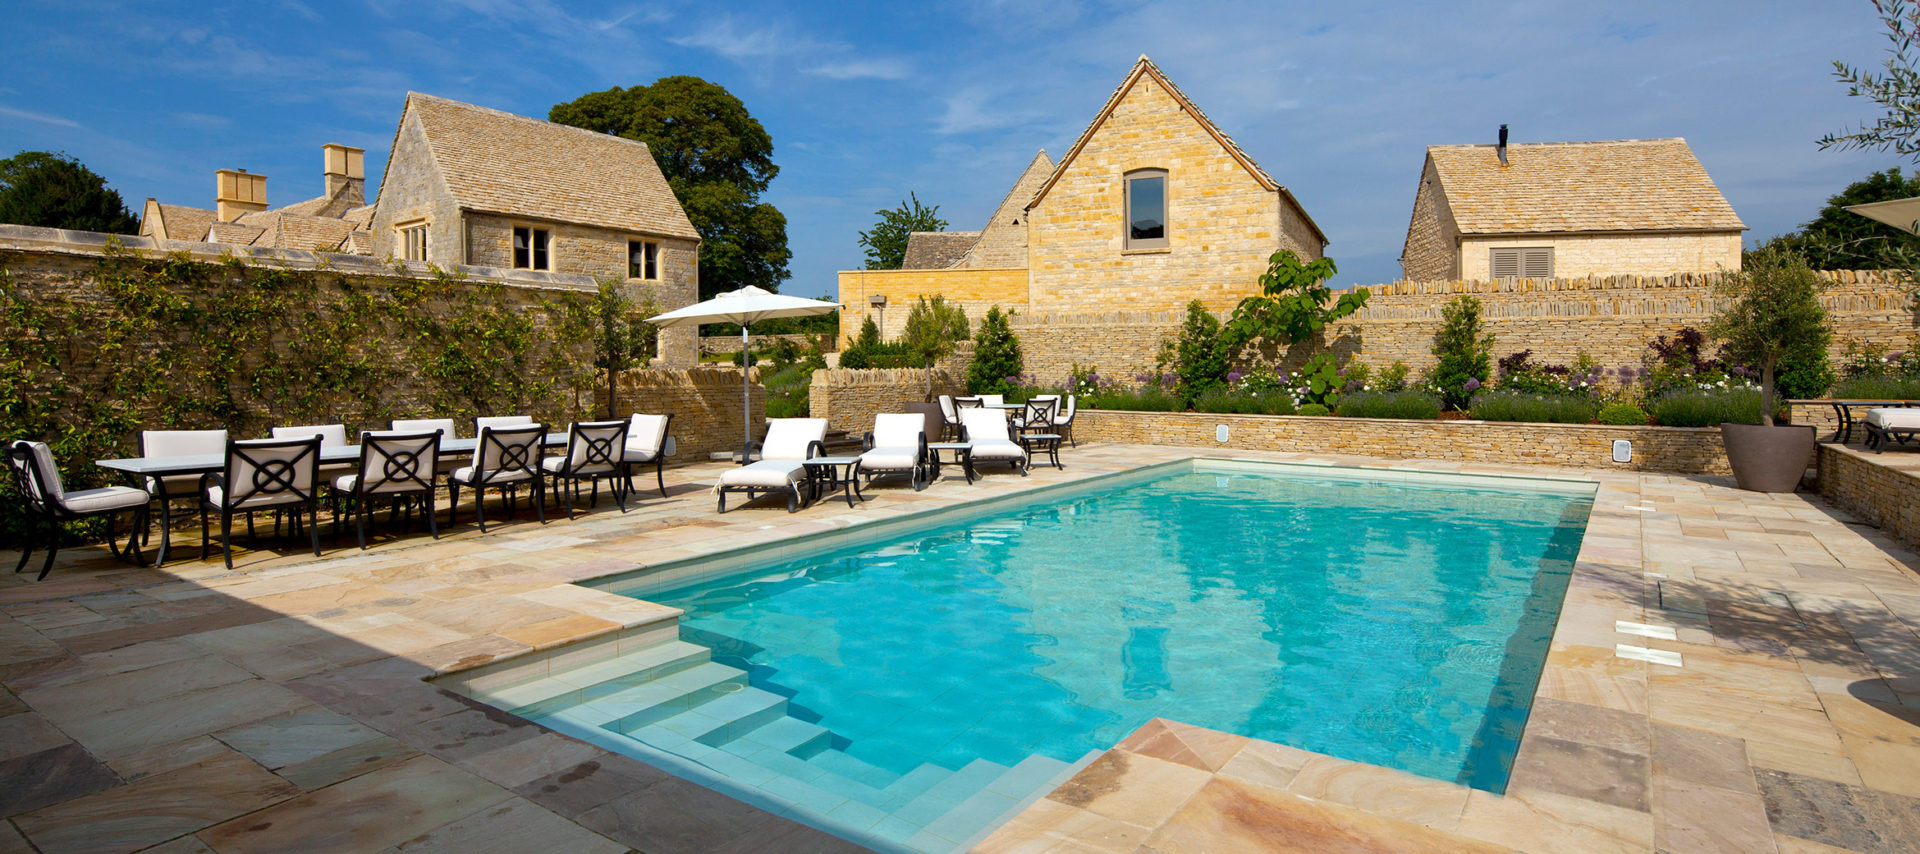 luxury-cotswold-farmhouse-swimming-pool-1920x854